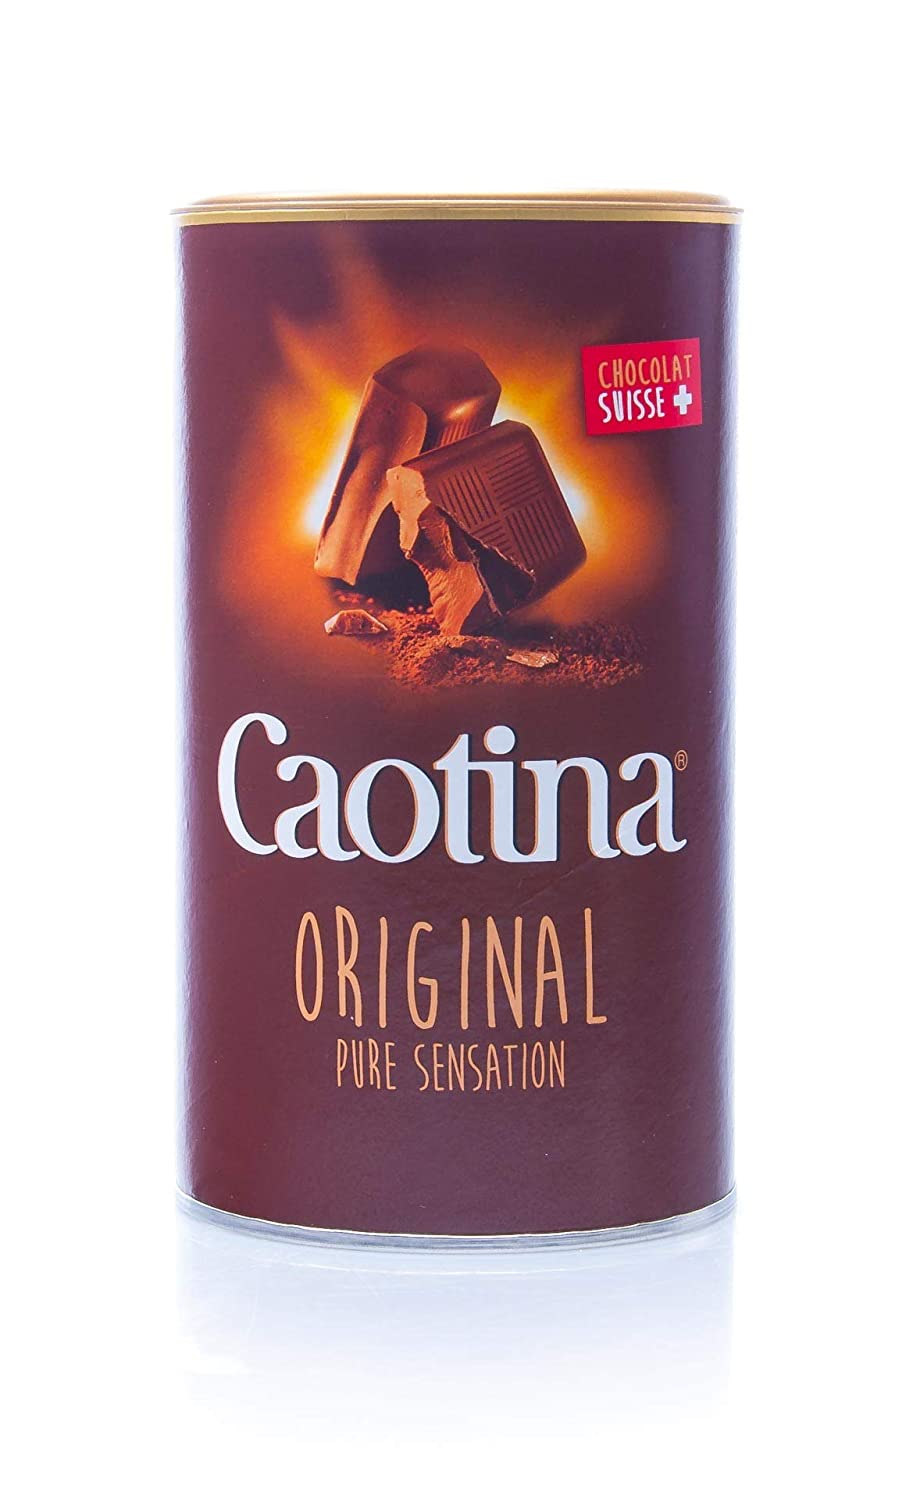 Caotina original, Cacao en Polvo de Chocolate Suizo, Bebida de Chocolate Caliente, Pack Doble, 2 x 500 g: Amazon.es: Hogar